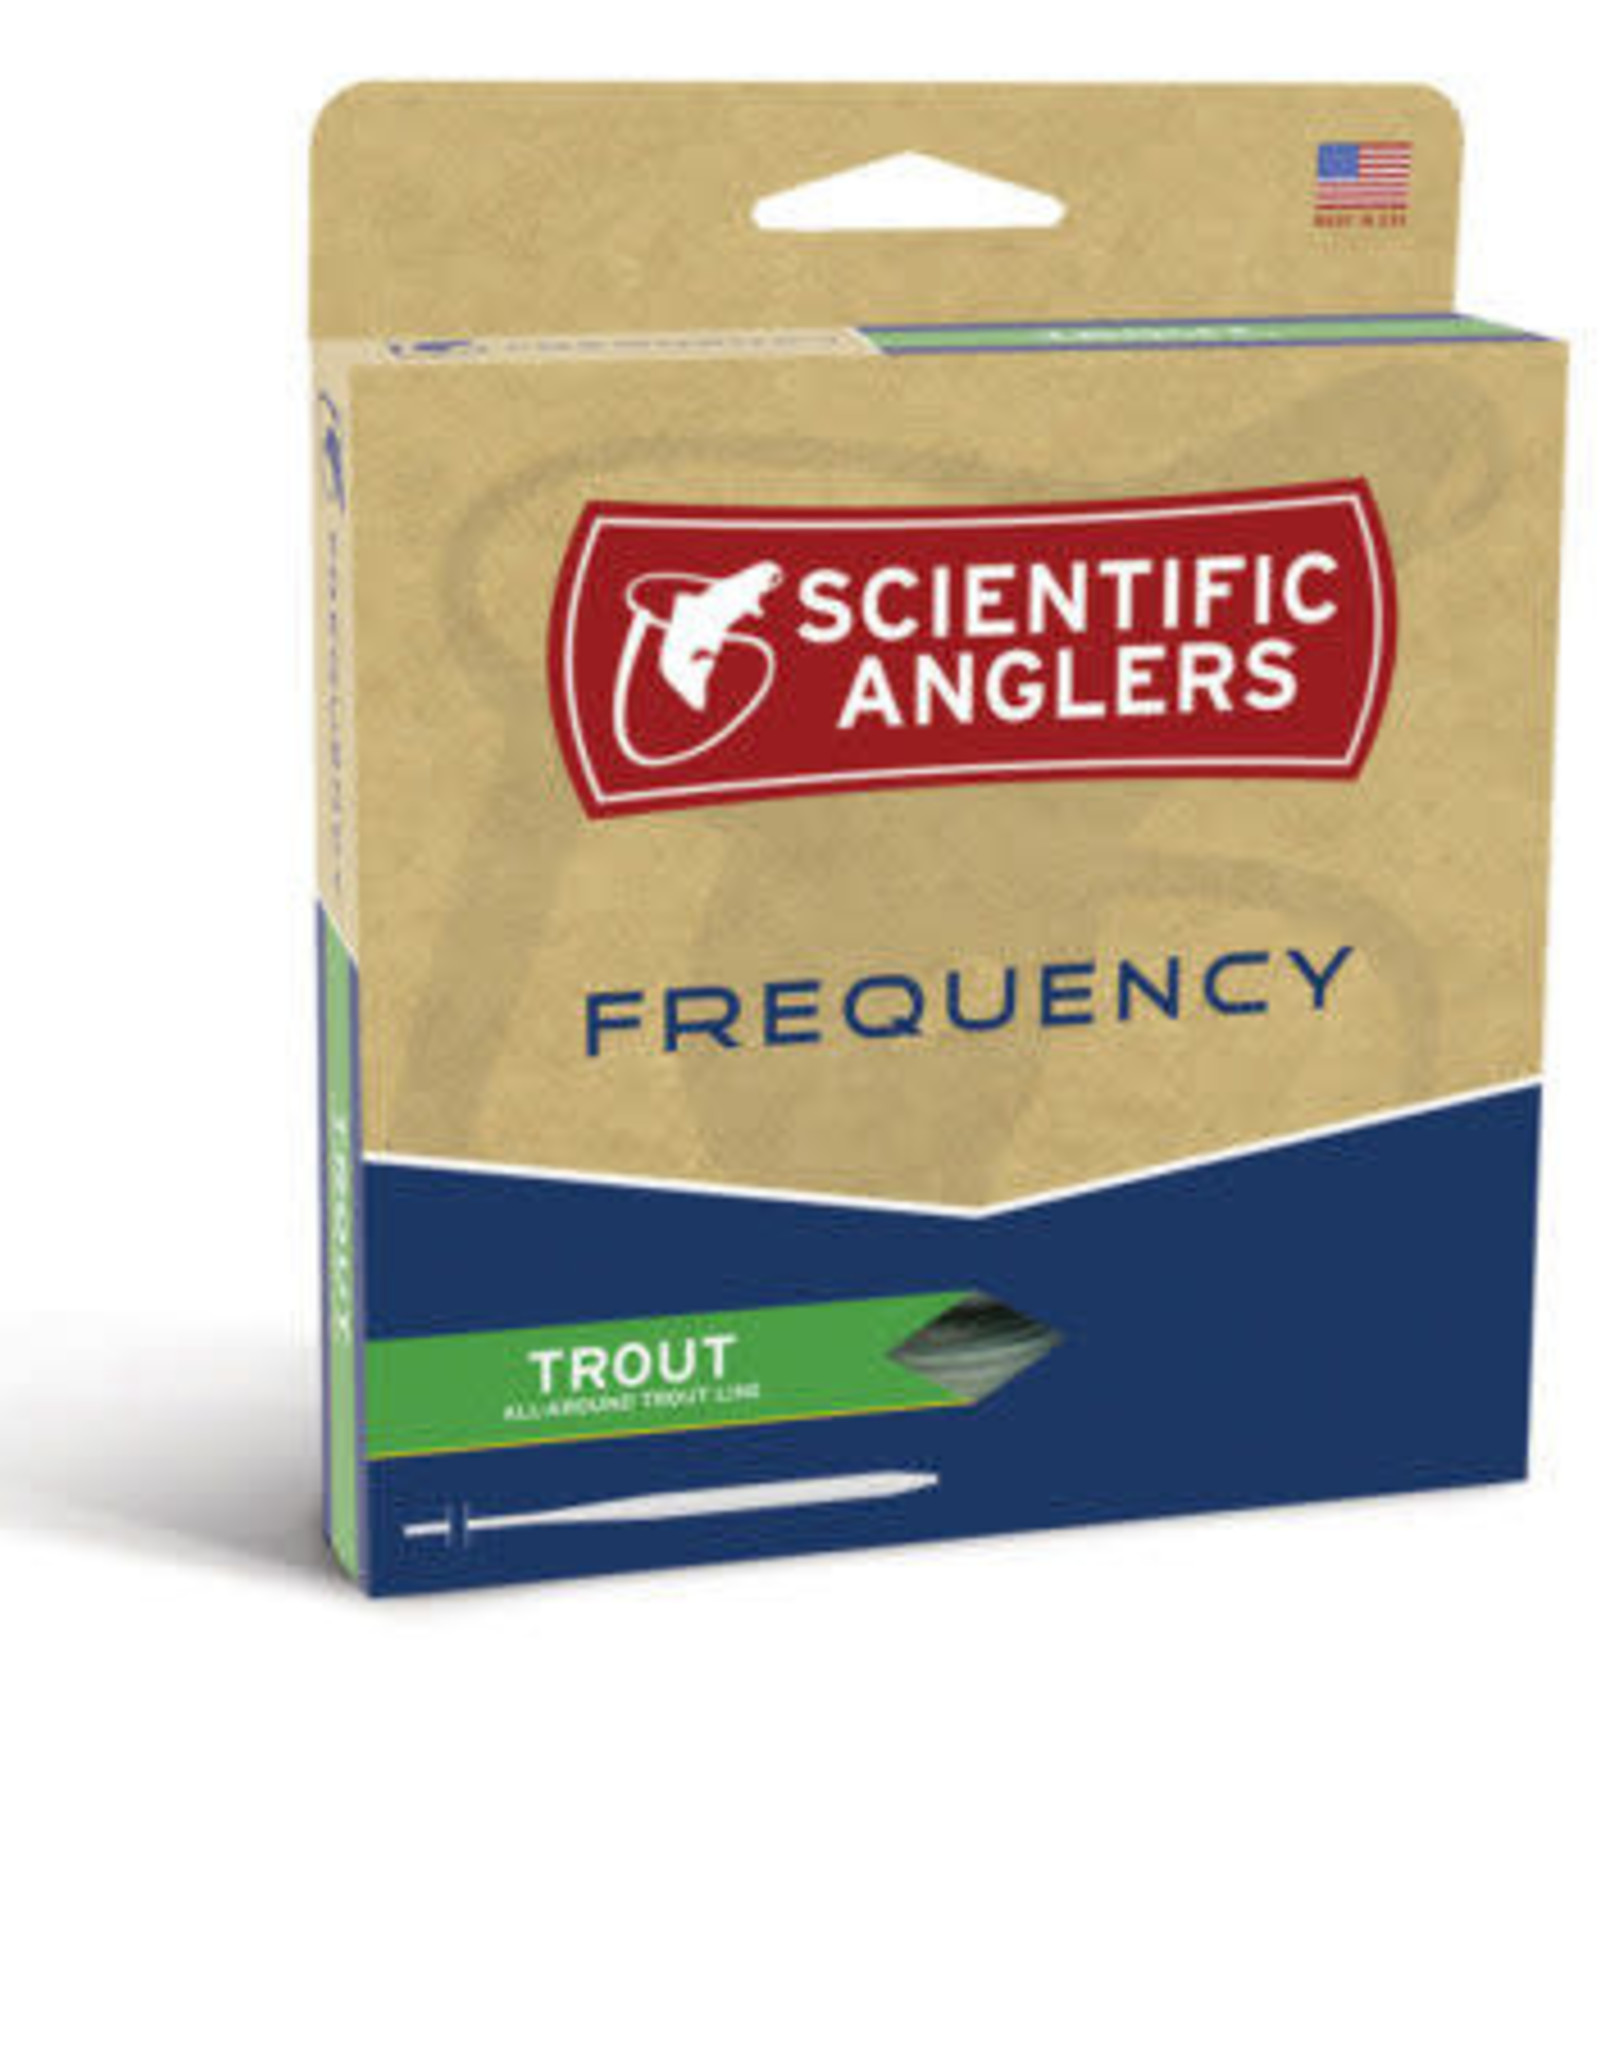 Scientific Anglers Scientific Anglers Frequency Trout